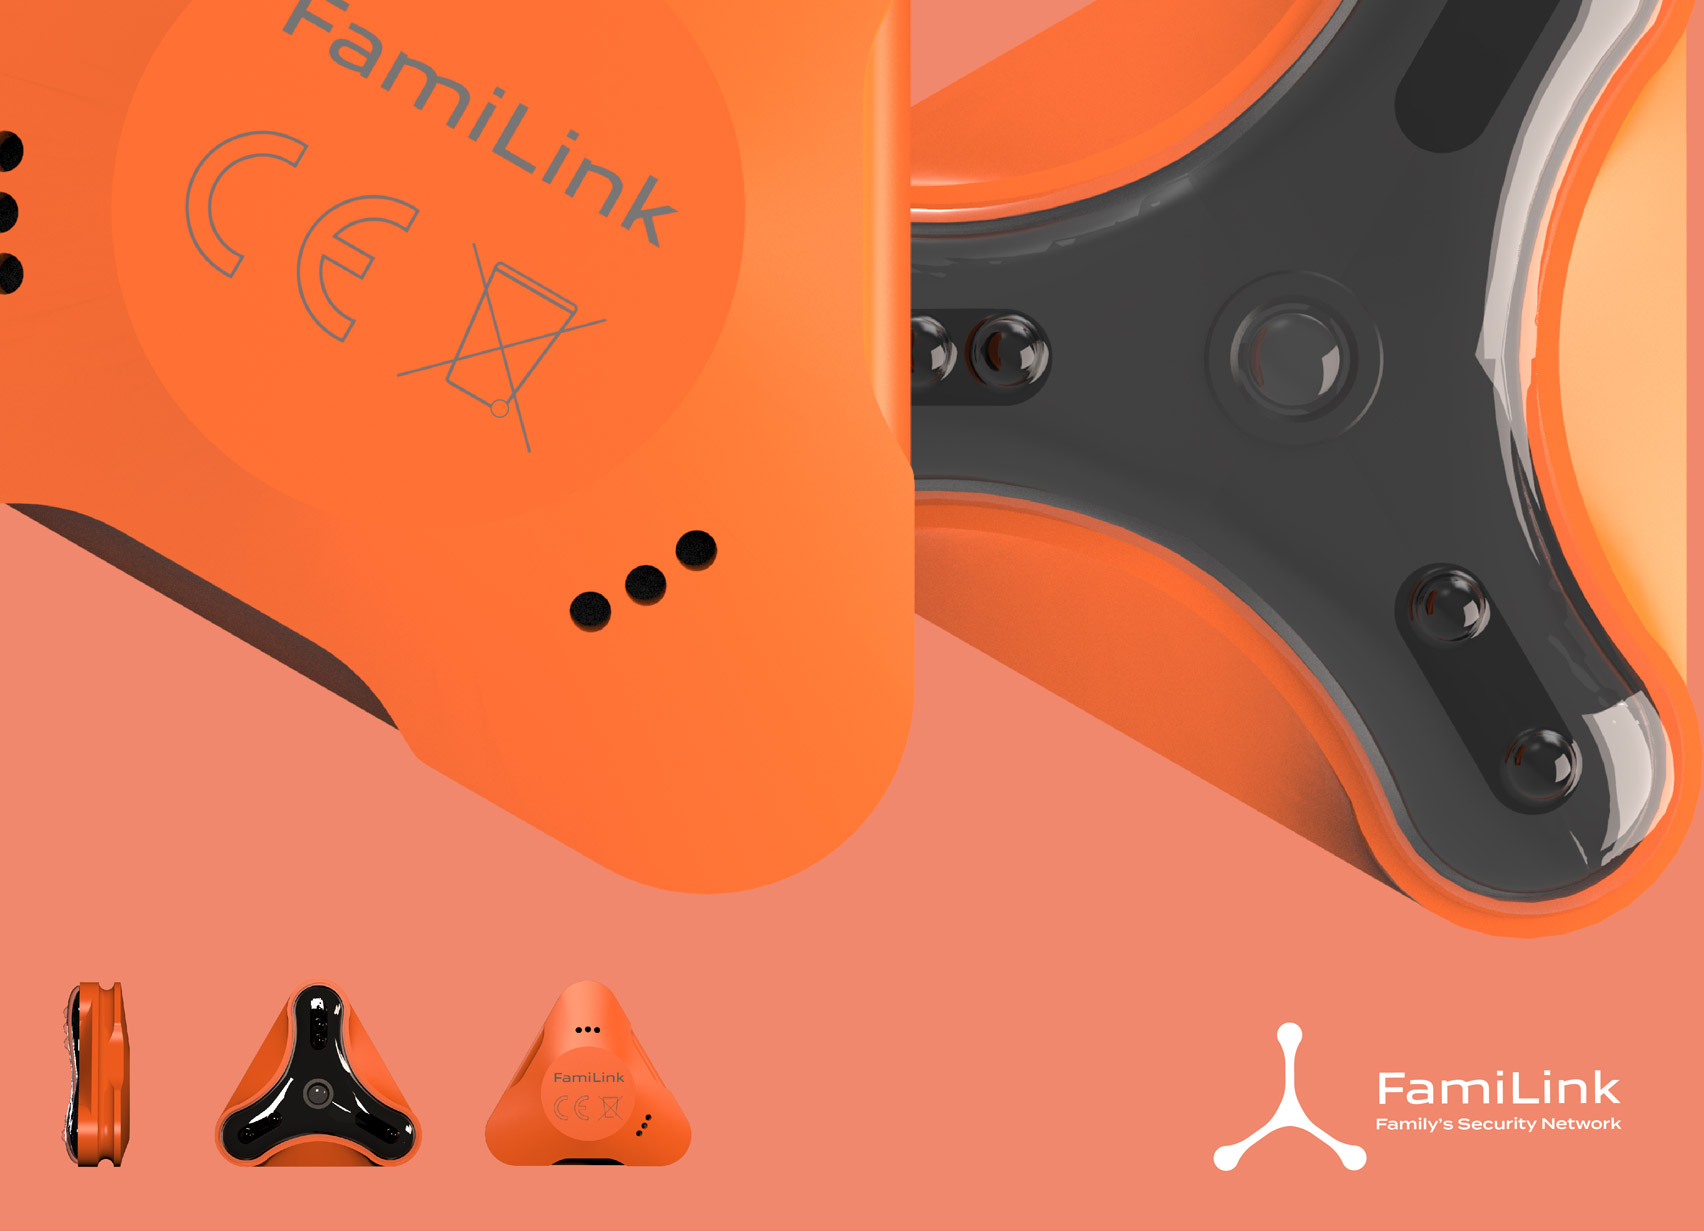 Familink – Family's Security Network by Vilius Vaura